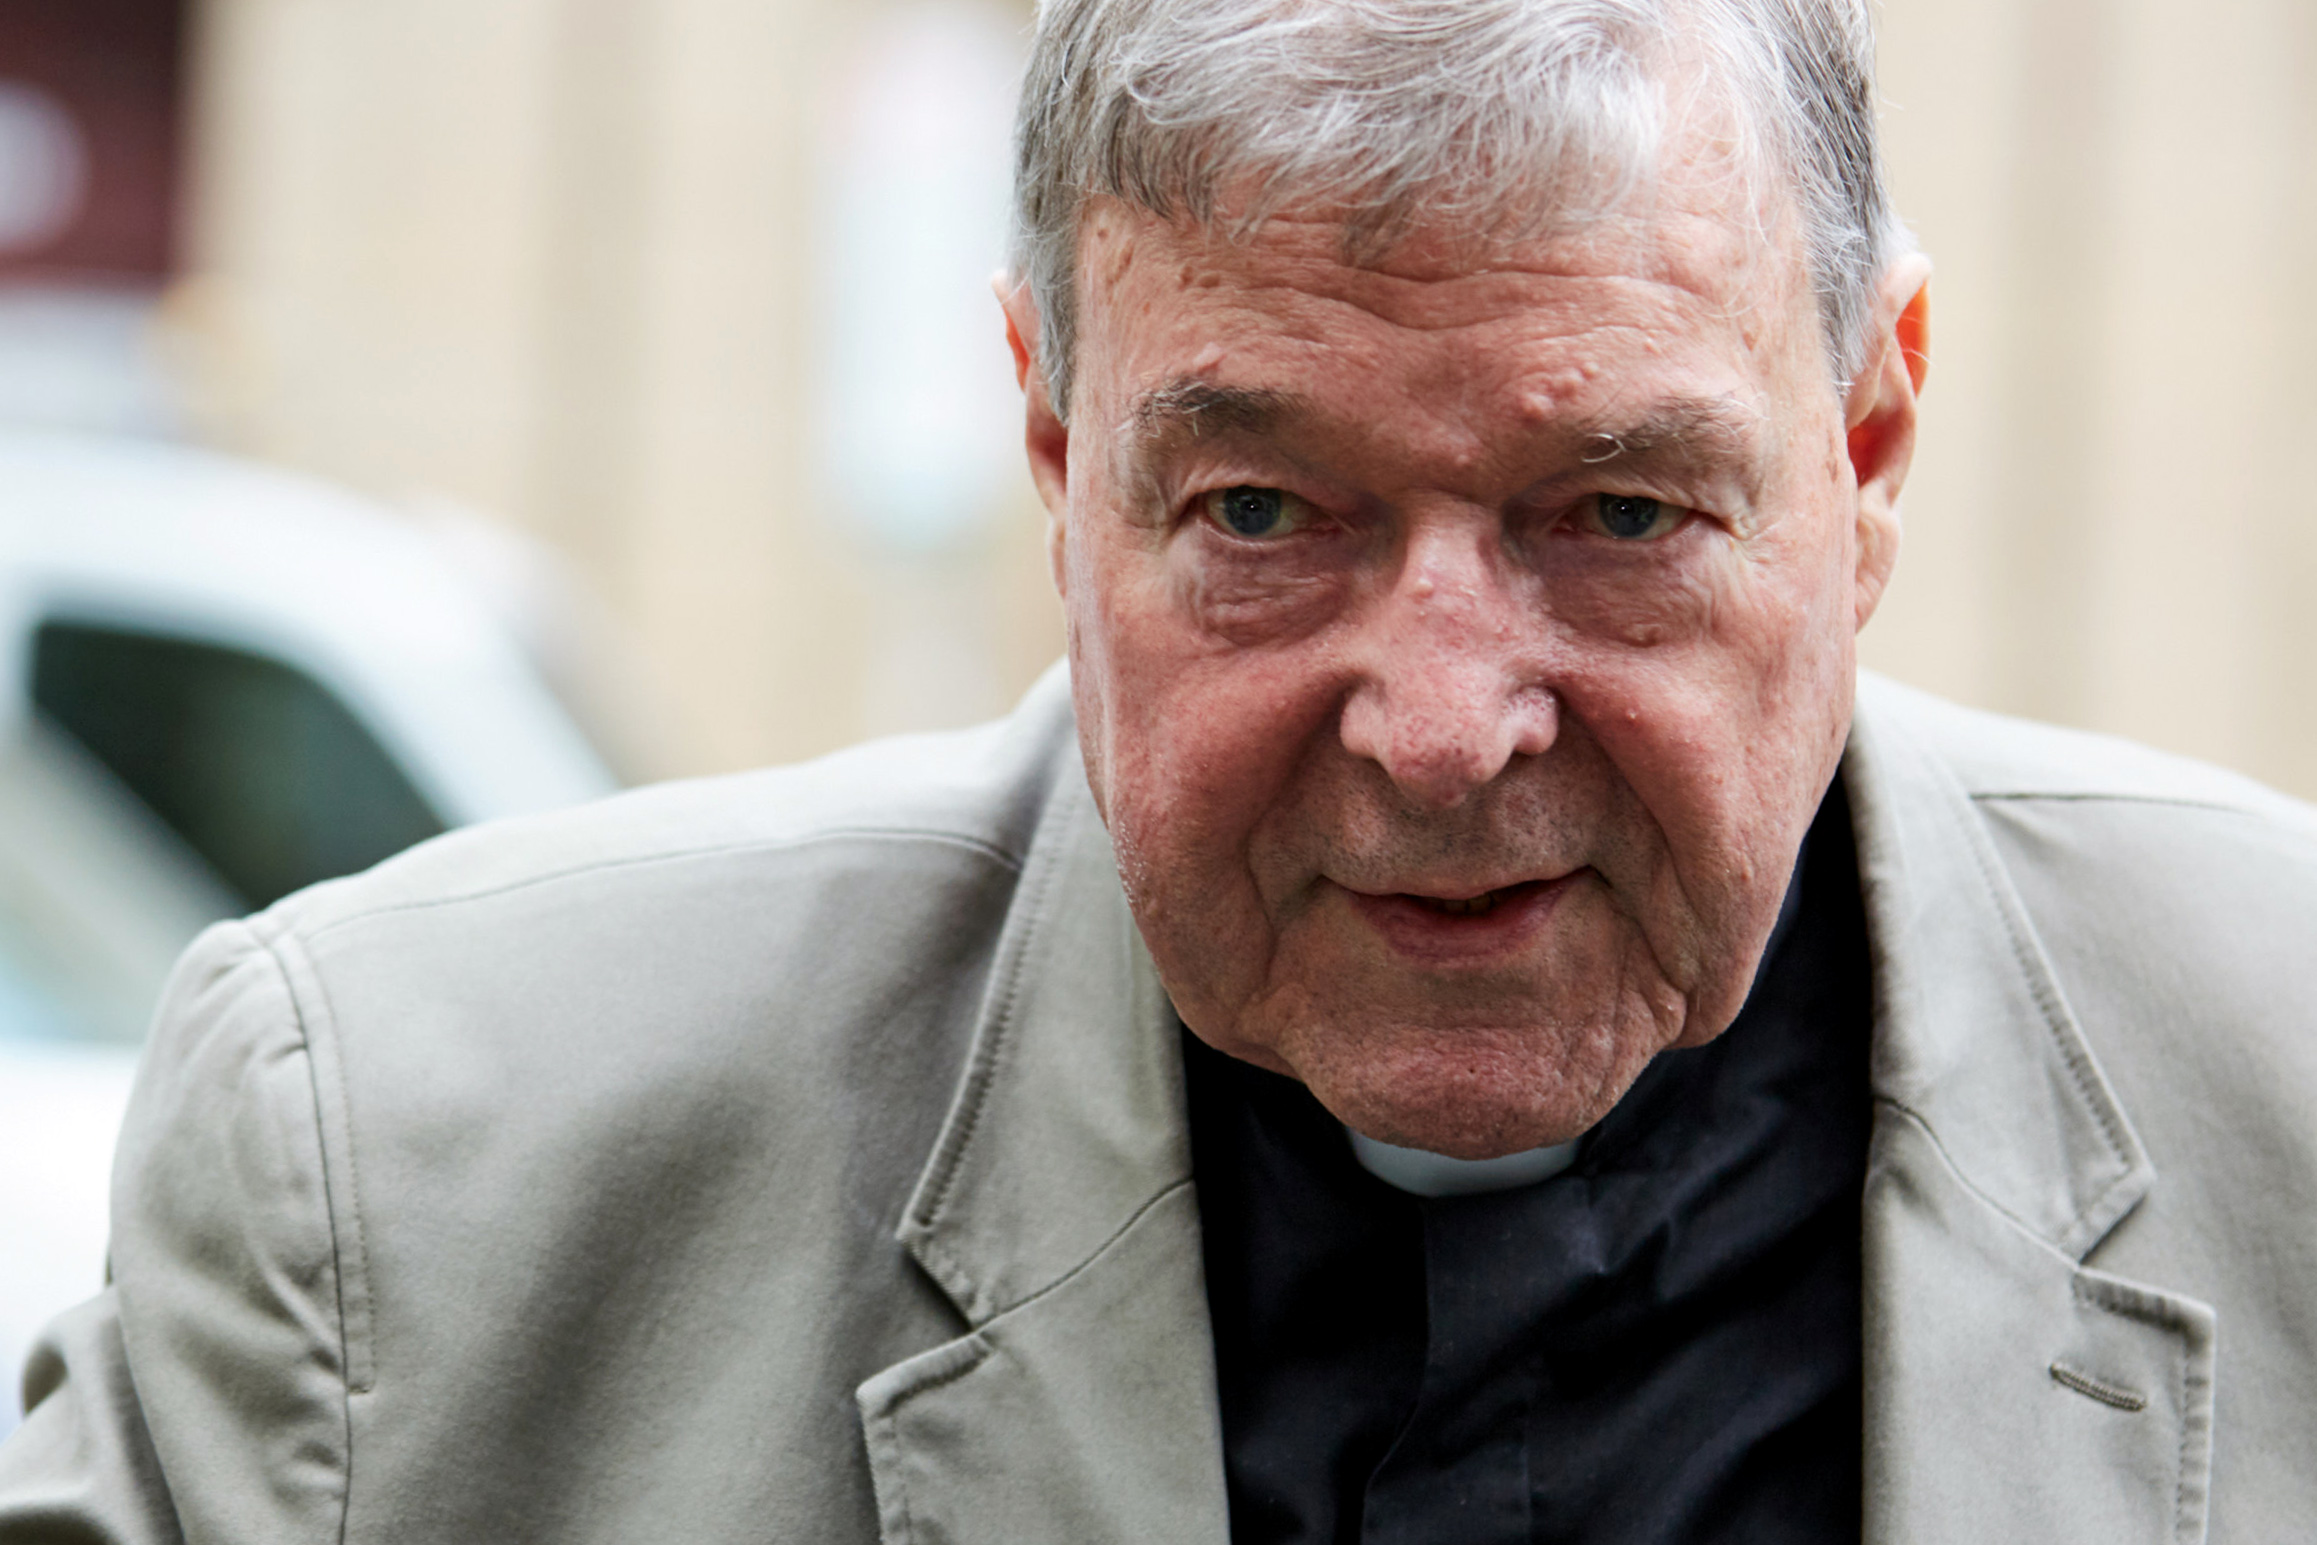 Australian Cardinal George Pell arrives at the County Court in Melbourne Feb. 26, 2019. An Australian court found Cardinal Pell guilty on five charges related to the sexual abuse of two 13-year-old boys; the verdict, reached in December, was announced Feb. 26. Sentencing is expected in early March, but the cardinal's lawyer already has announced plans to appeal the conviction. Photo: CNS/Erik Anderson